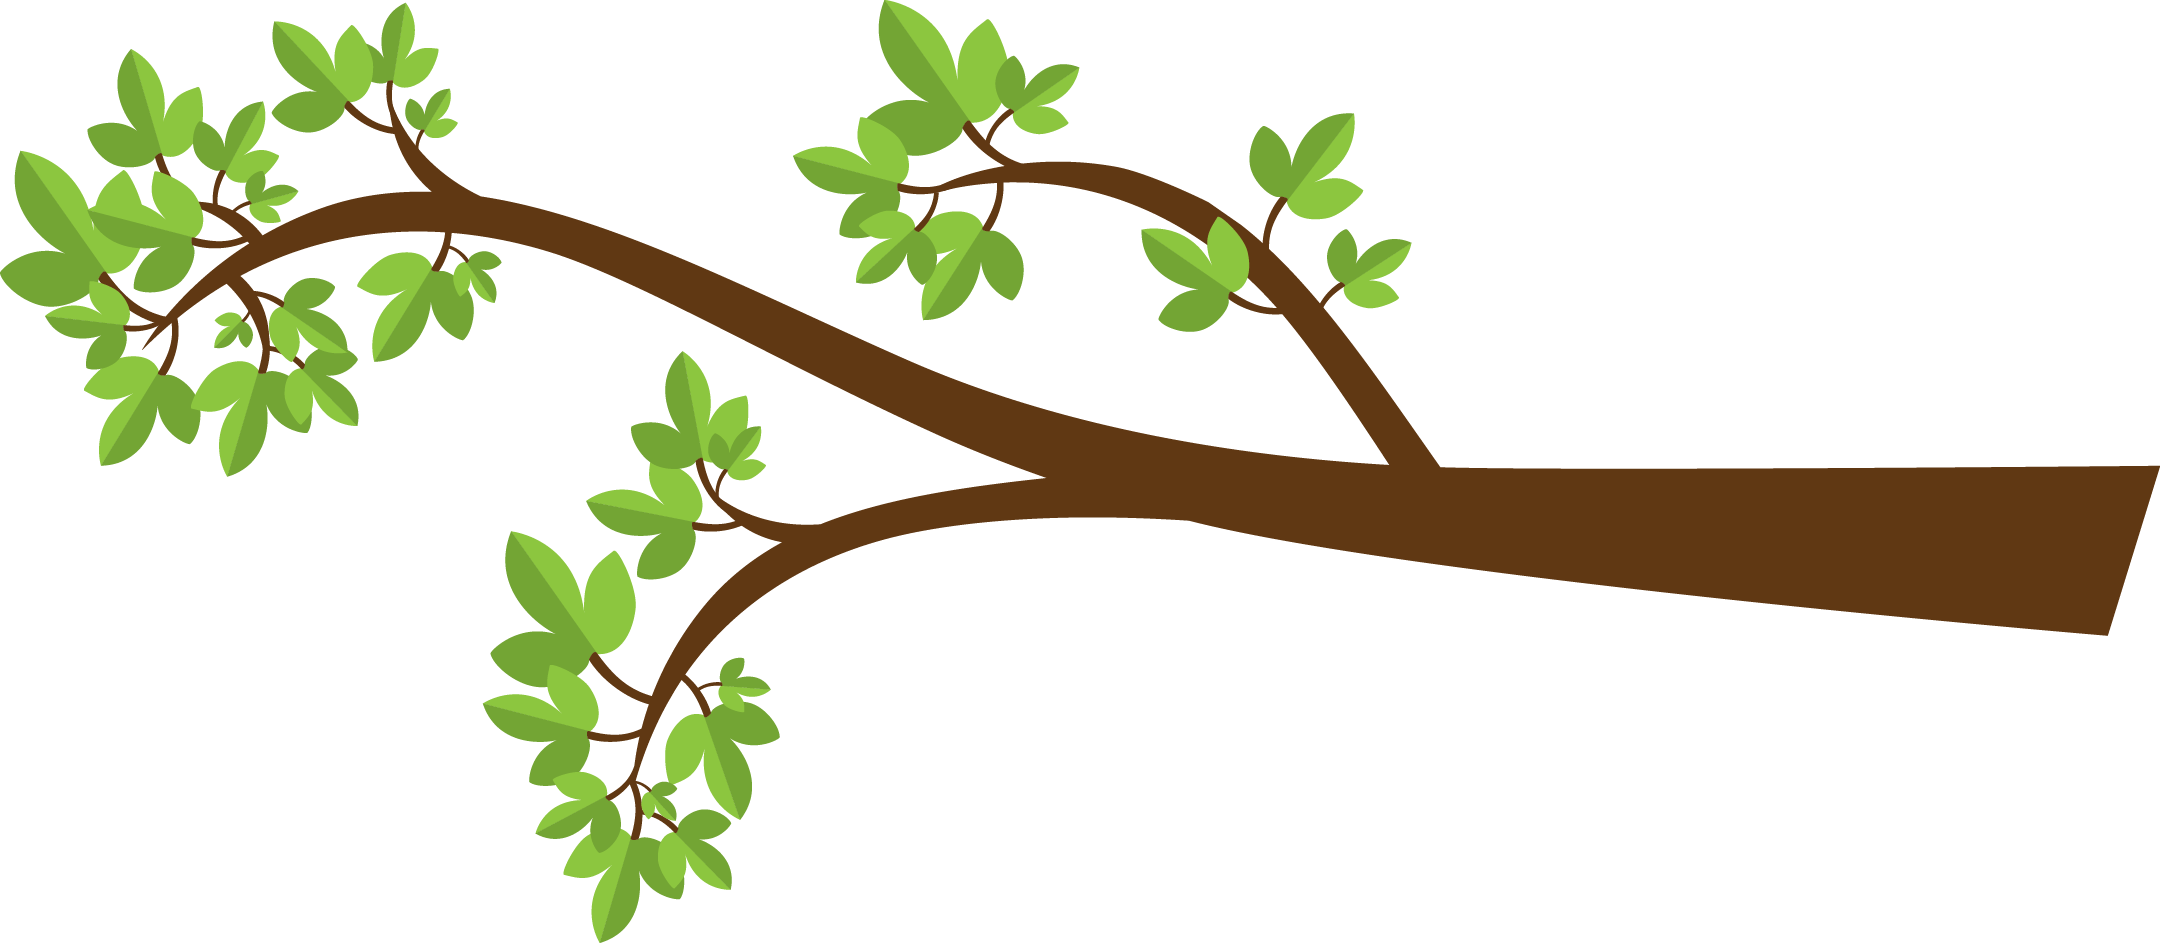 Tree limb with flowers clipart transparent background